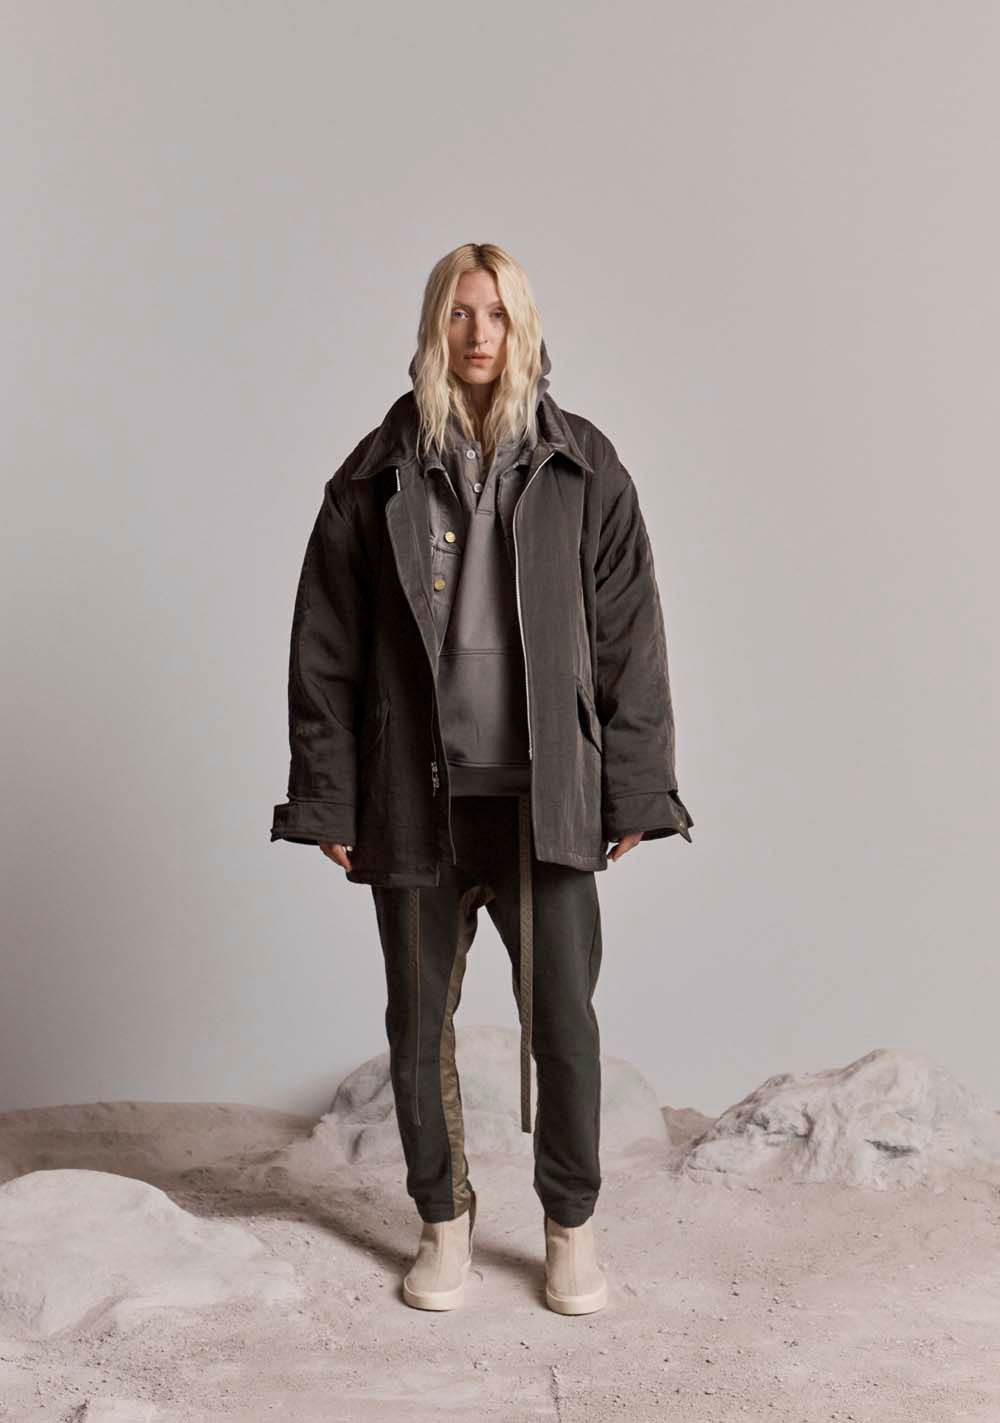 https_%2F%2Fhypebeast.com%2Fimage%2F2018%2F09%2Ffear-of-god-6-sixth-collection-jared-leto-nike-59.jpg